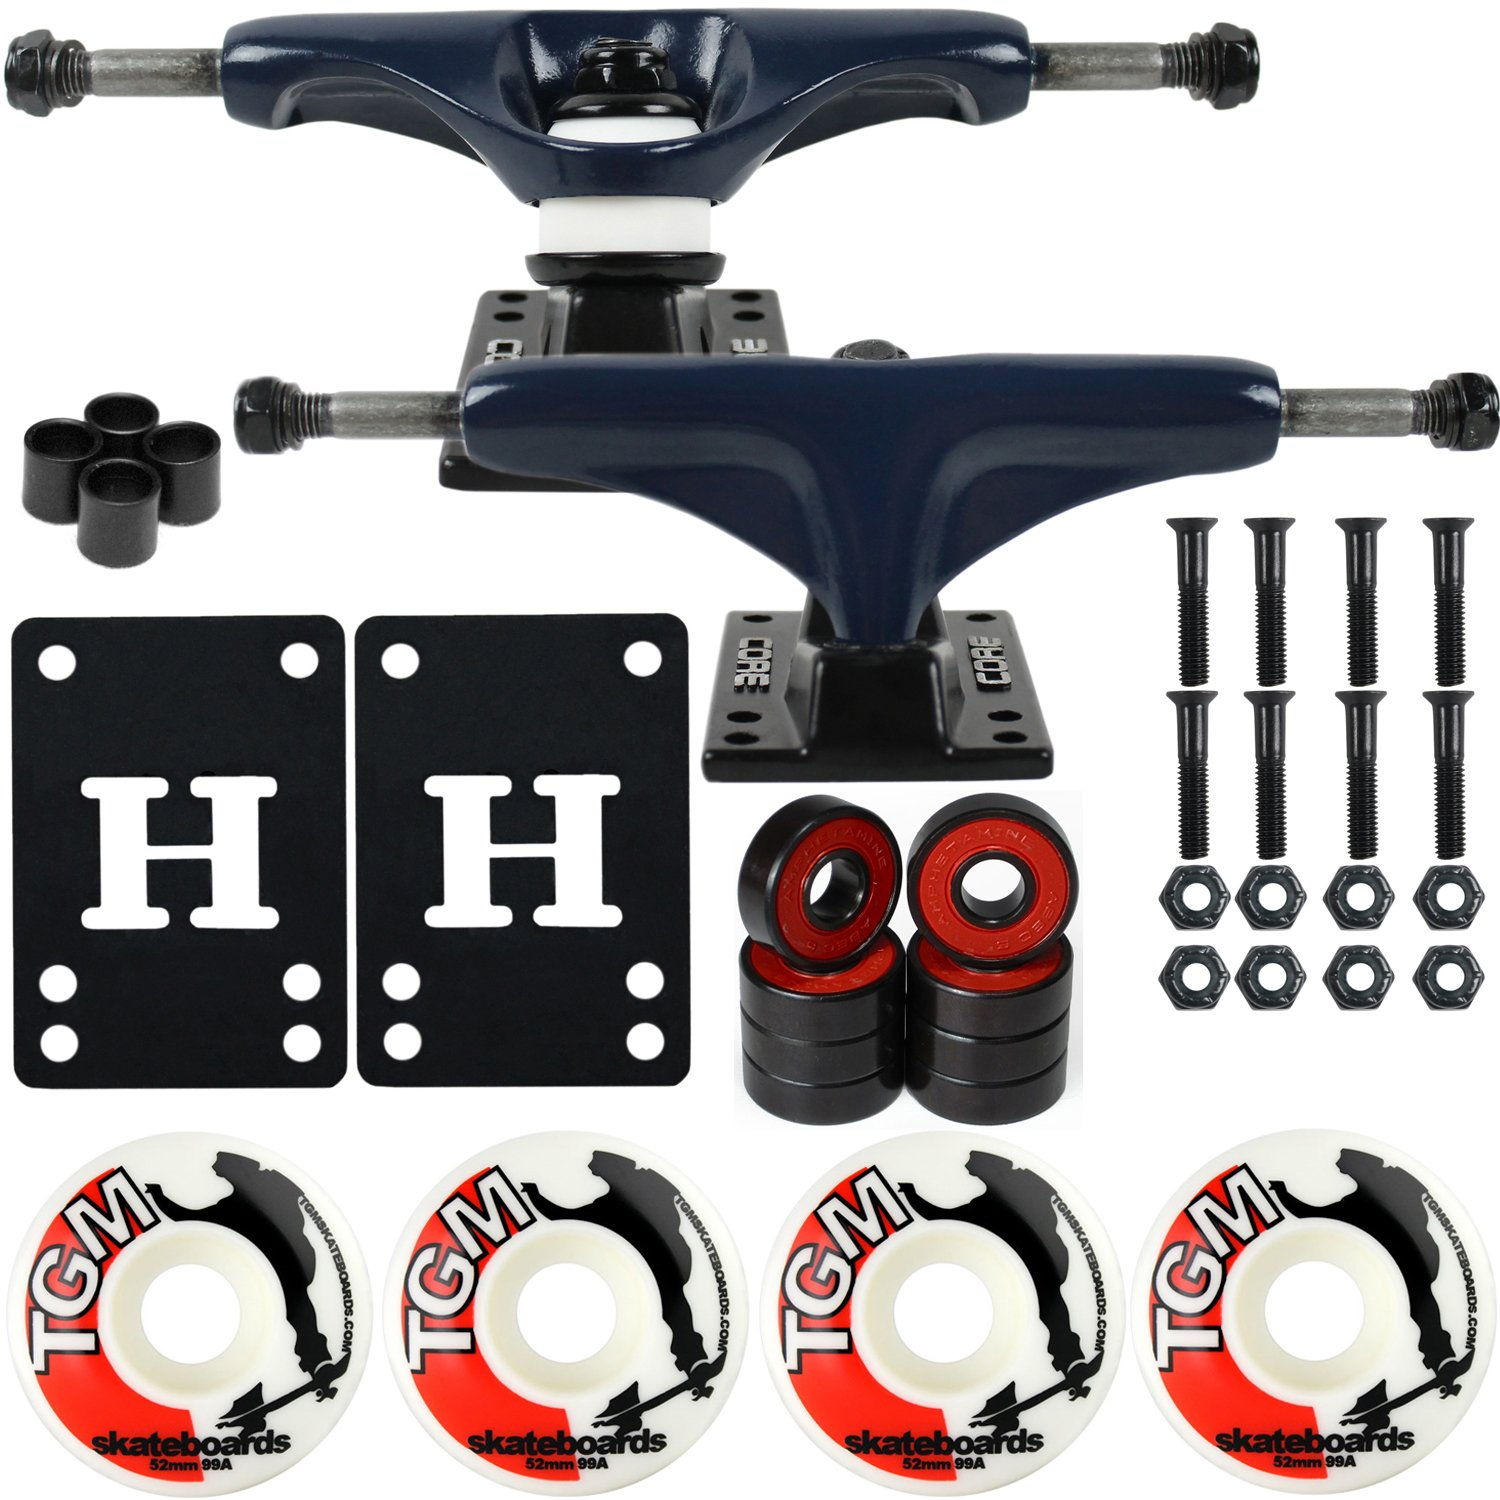 CORE Skateboard Package 5.0'' Trucks 52mm with White Wheels + Components (Navy Hanger/Black Base) by CORE